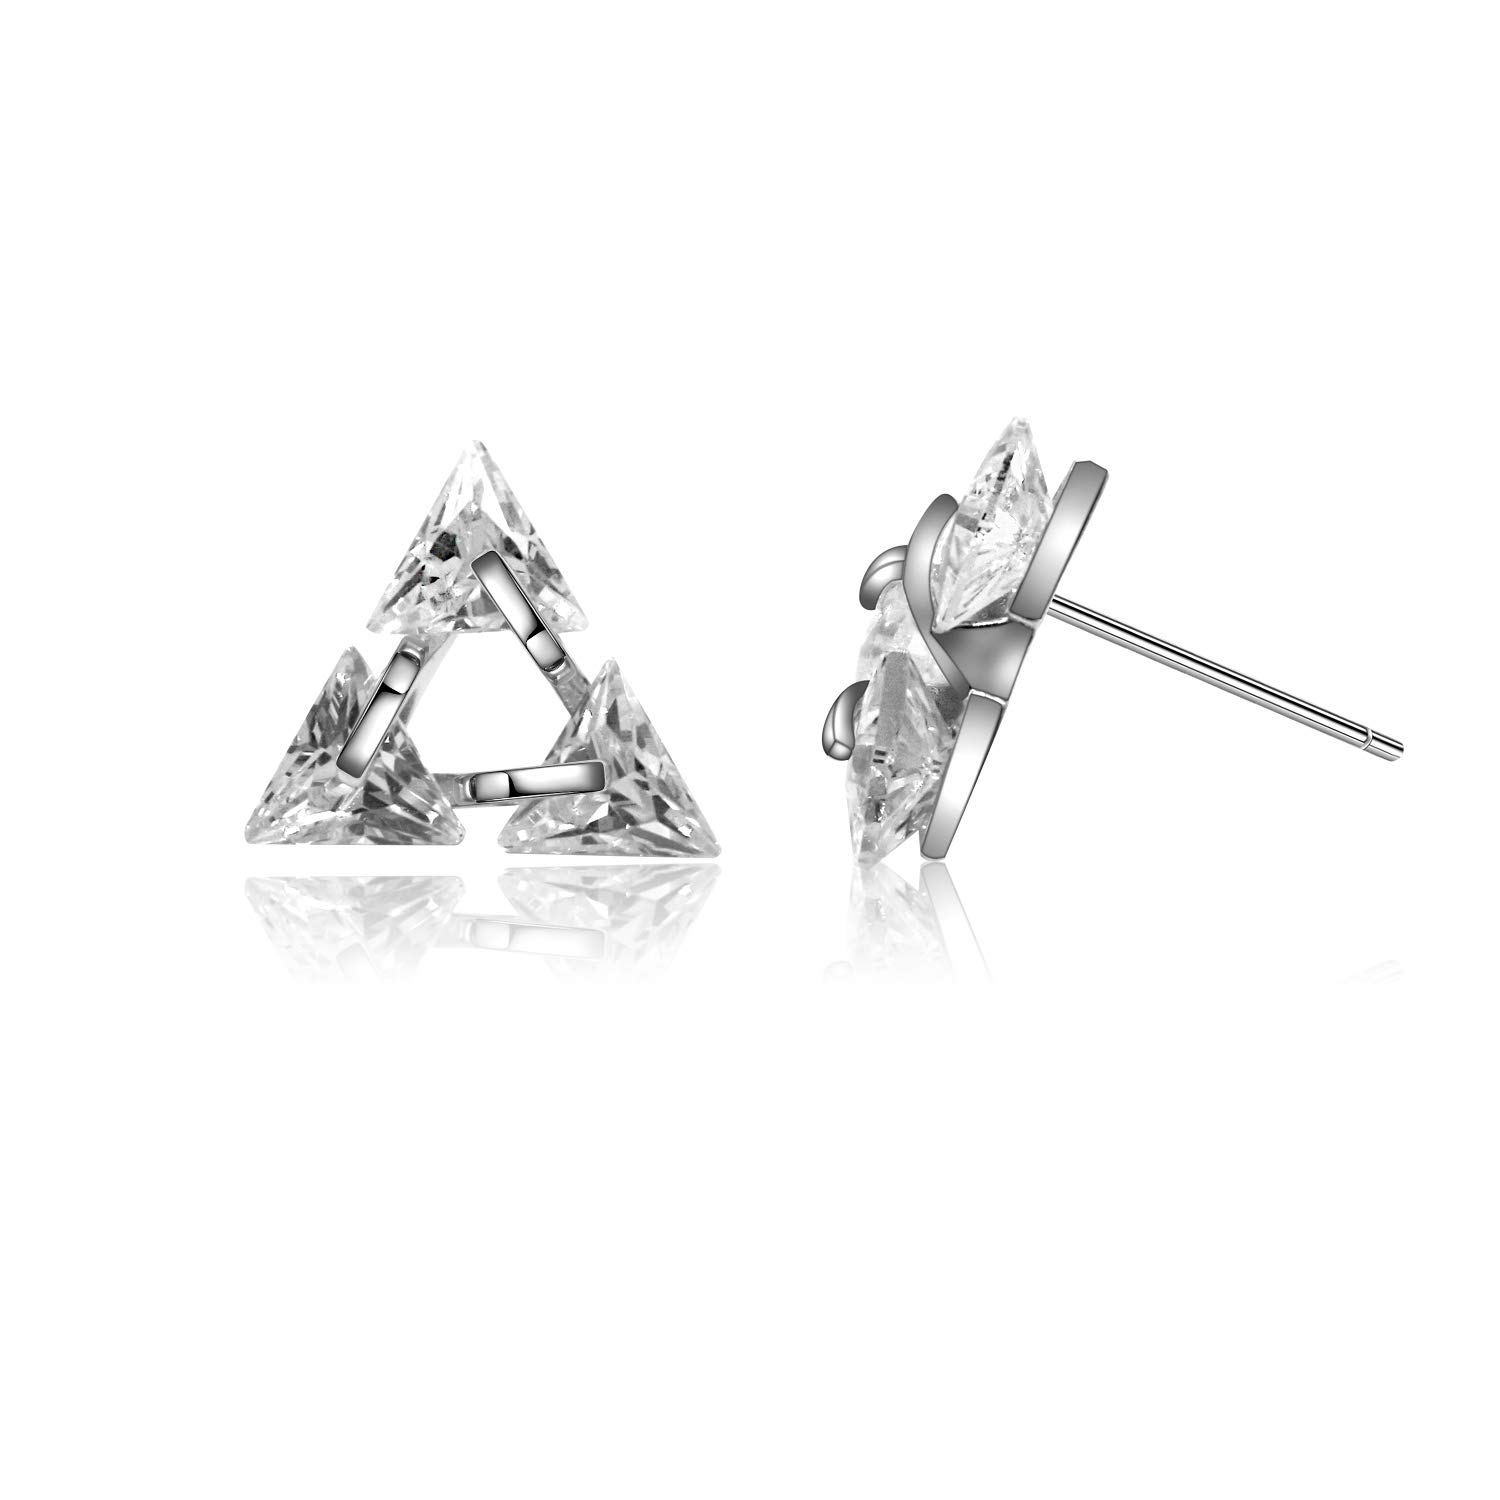 Sanche Delicate Triangle Earings Stud Best Handmade Gift with Fine Gift Box